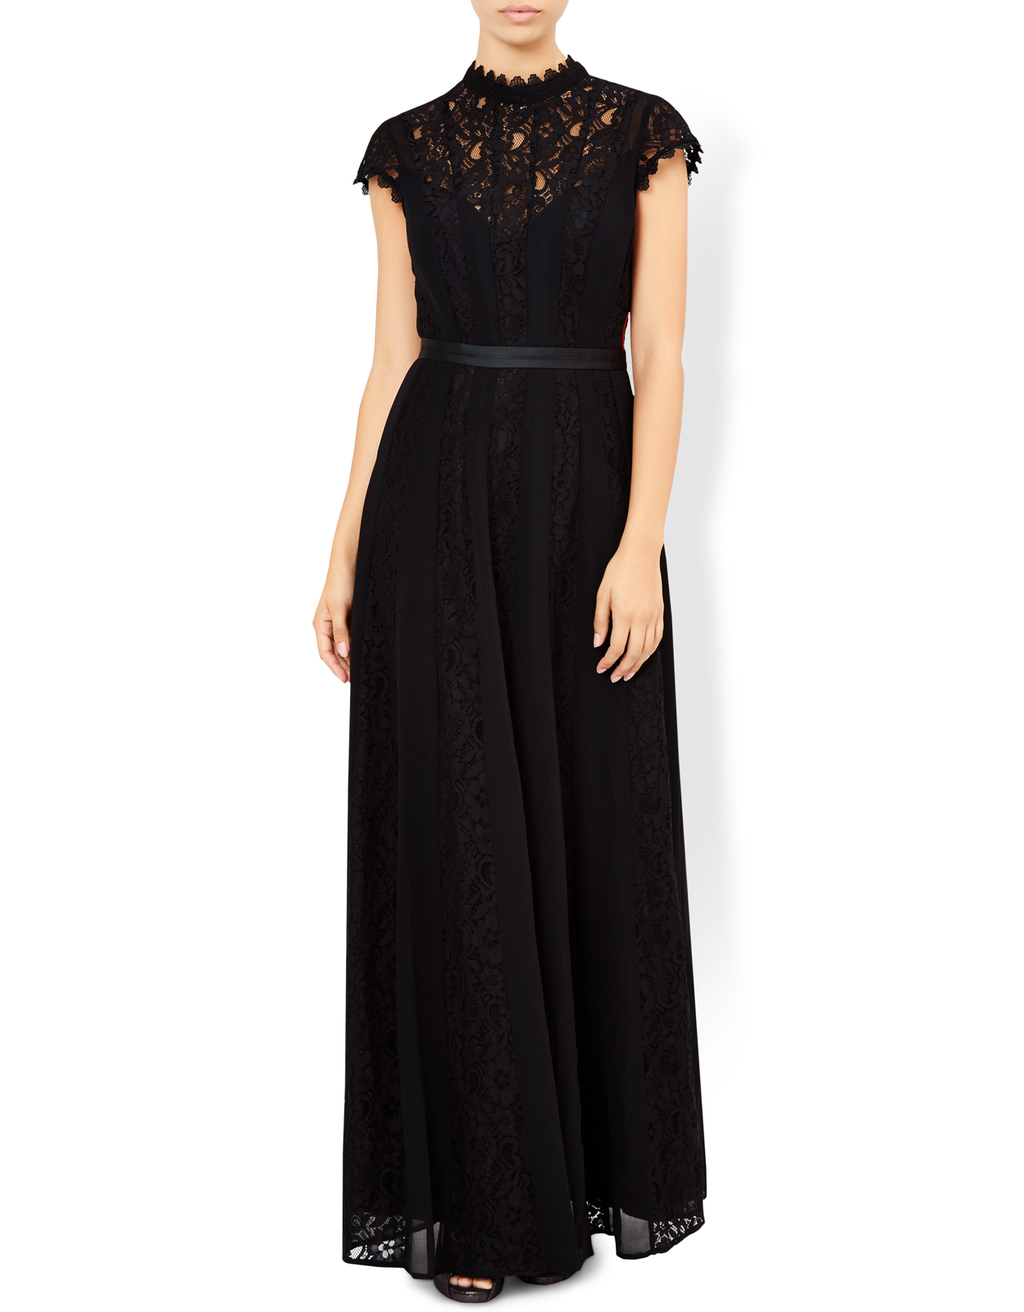 Roxana Maxi Dress - sleeve style: capped; pattern: plain; style: maxi dress; neckline: high neck; predominant colour: black; length: floor length; fit: soft a-line; fibres: polyester/polyamide - 100%; occasions: occasion; sleeve length: short sleeve; texture group: sheer fabrics/chiffon/organza etc.; pattern type: fabric; embellishment: lace; shoulder detail: sheer at shoulder; season: a/w 2016; wardrobe: event; embellishment location: top